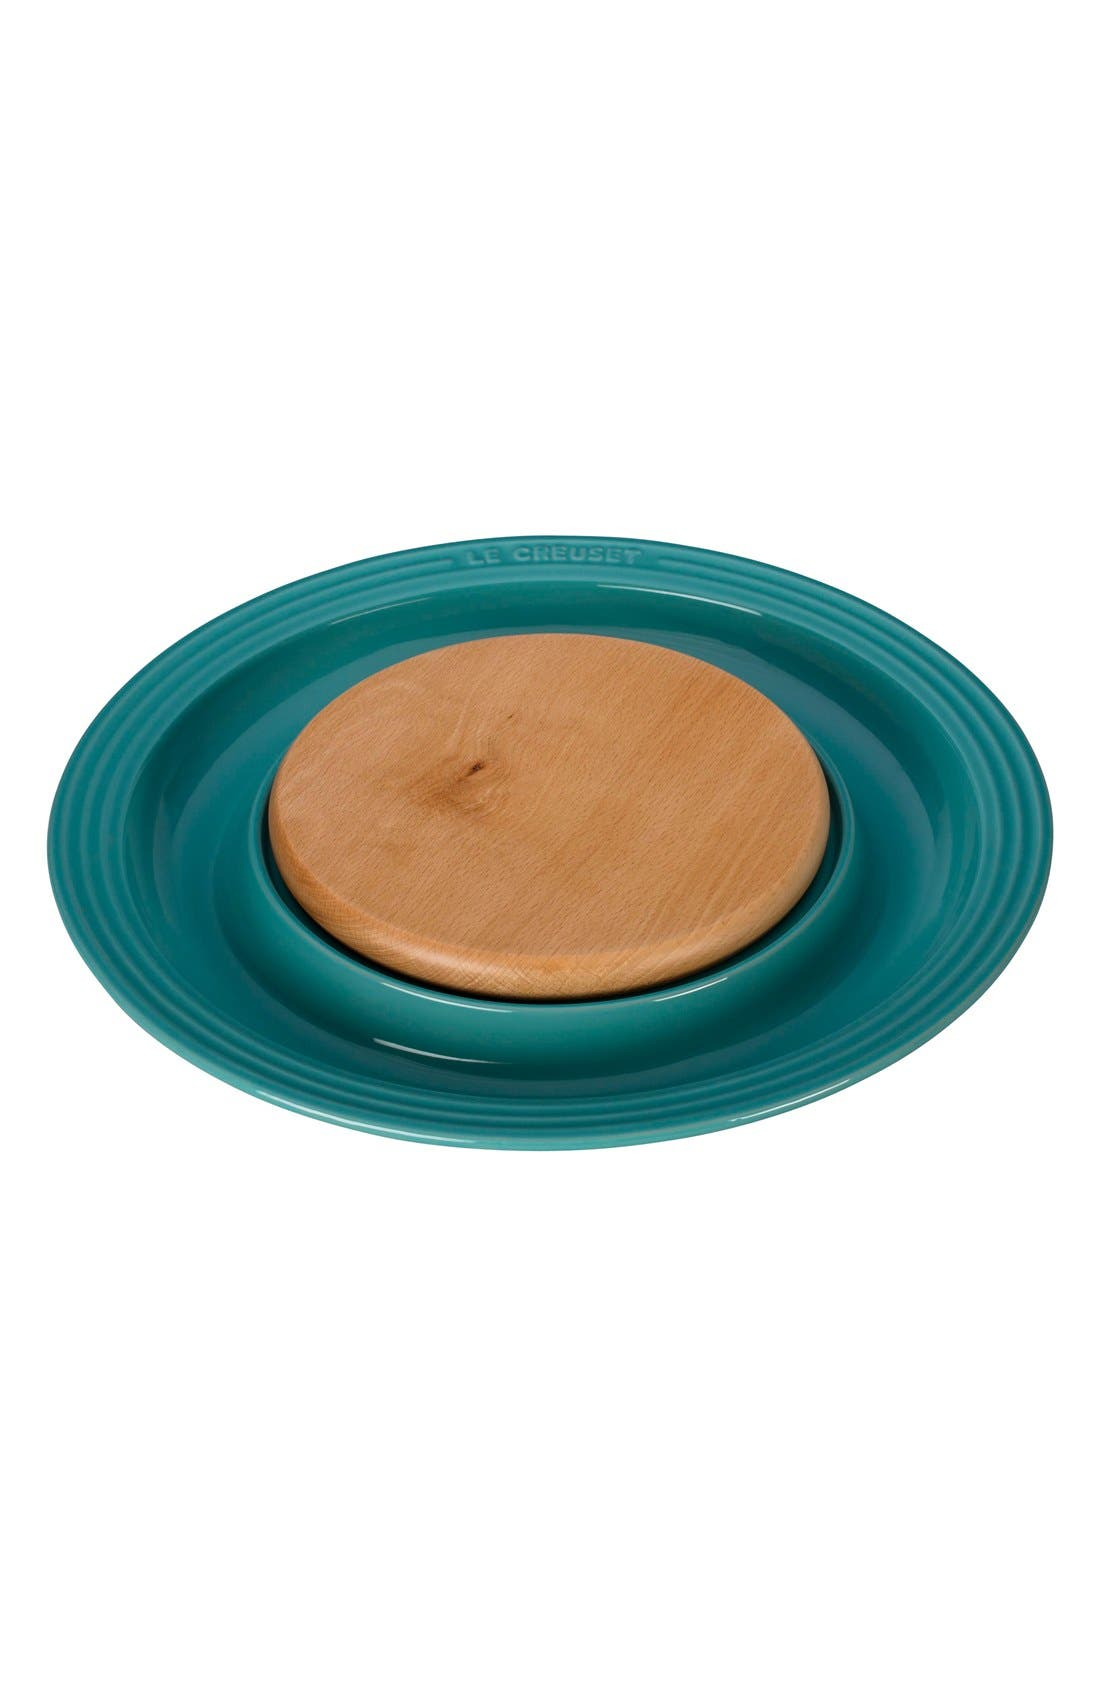 Main Image - Le Creuset Round Platter with Cutting Board